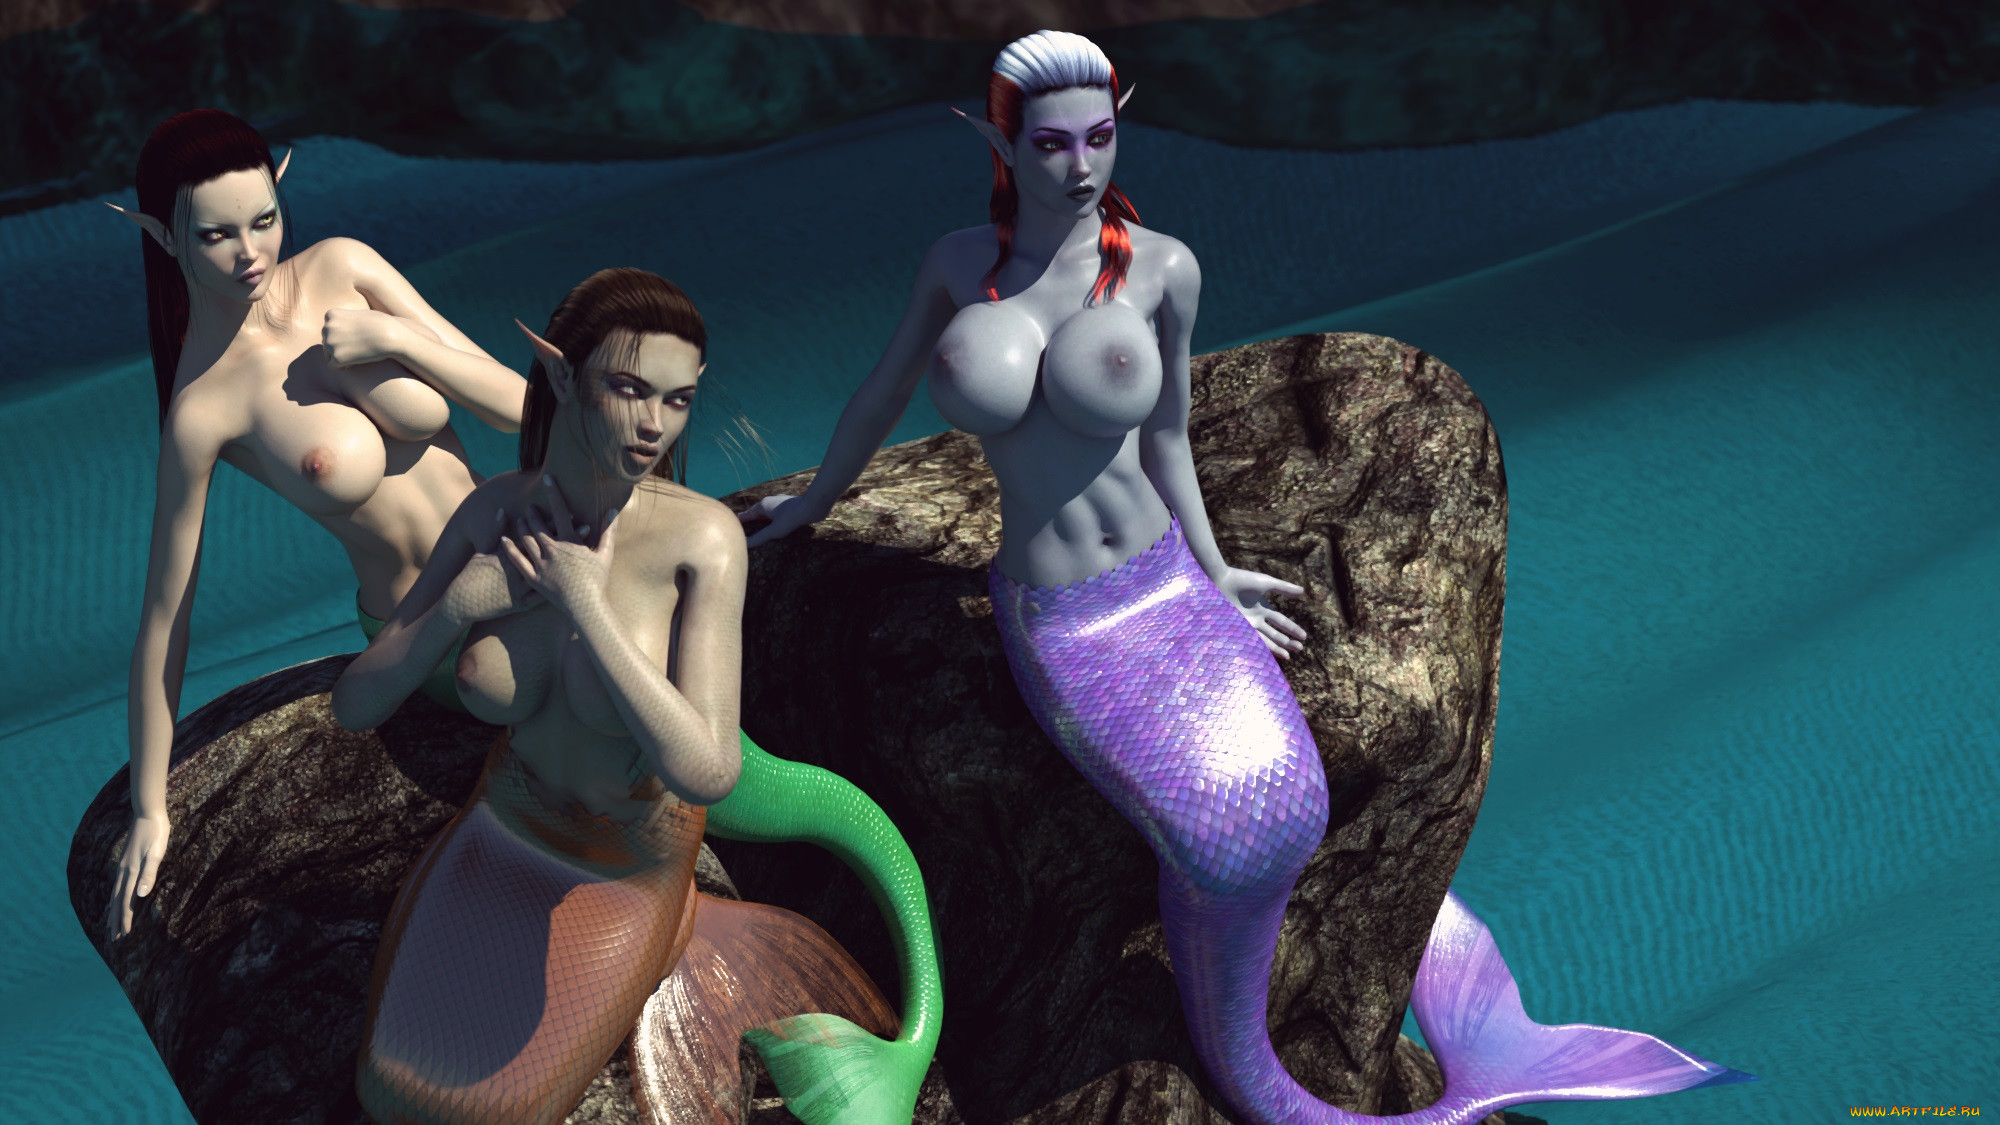 Mermaid fantasy sex hentia gallery